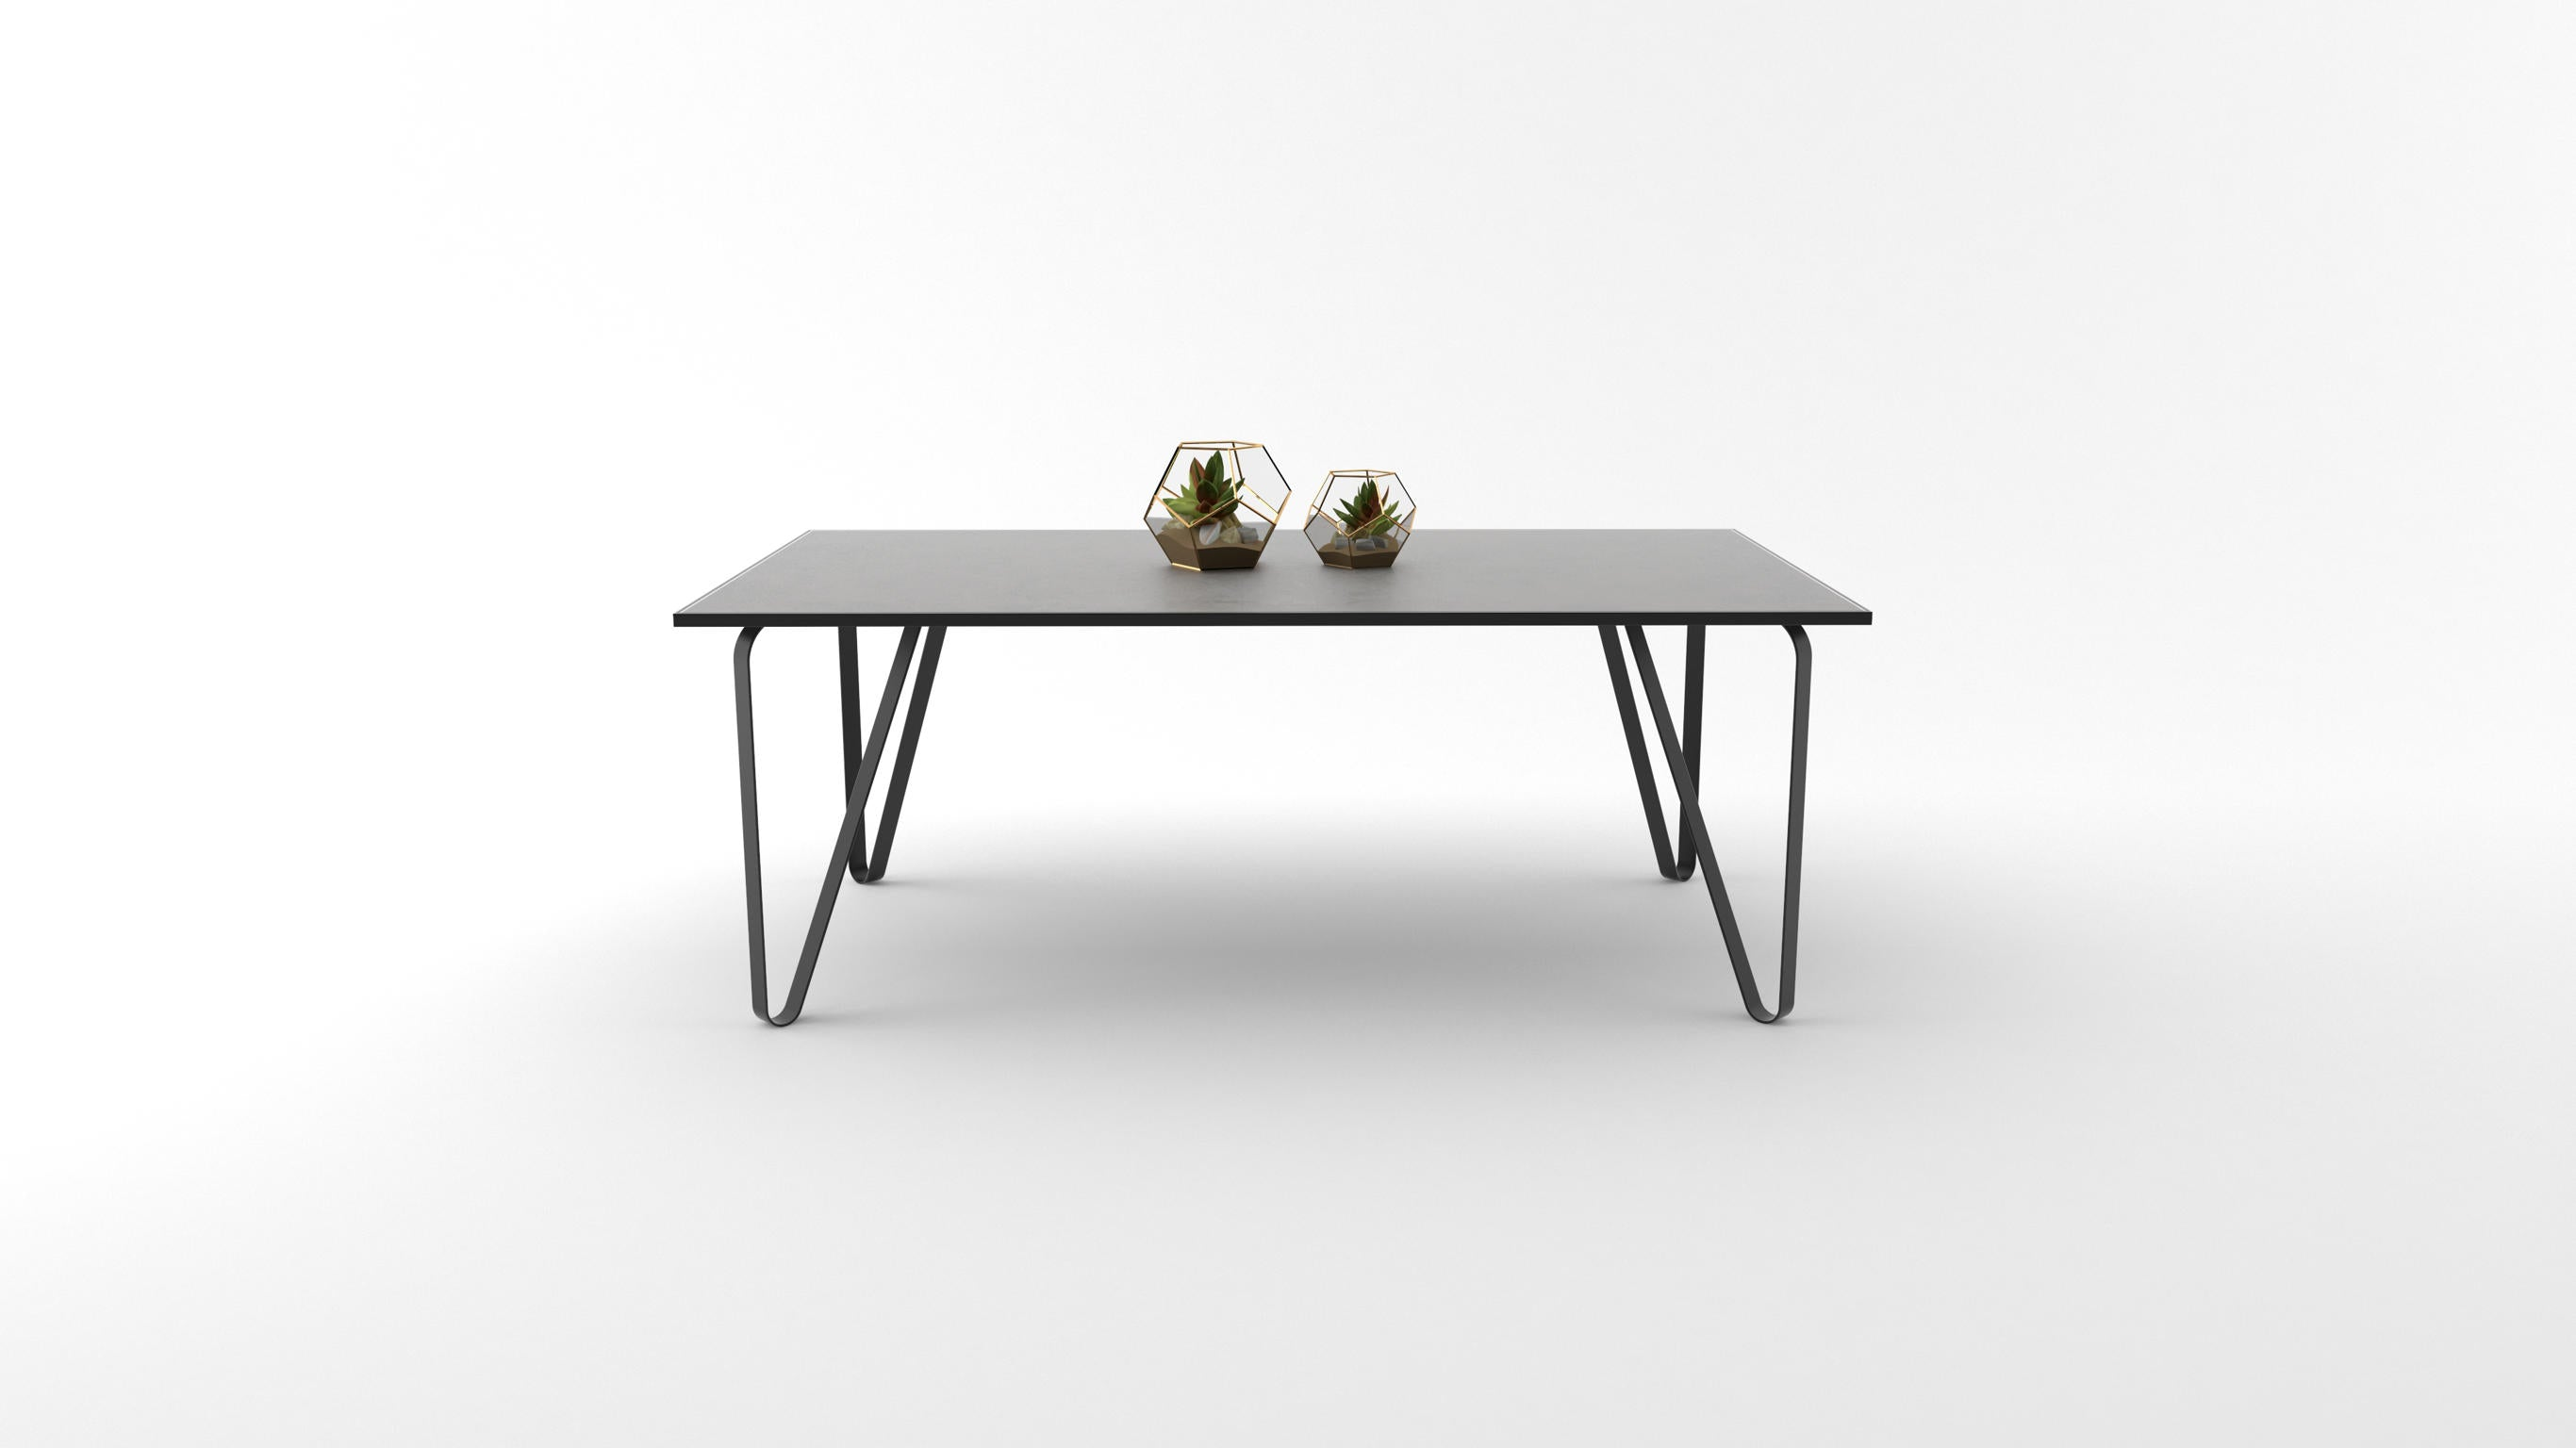 Ceramic tile table with black legs and italian tiles - Minal